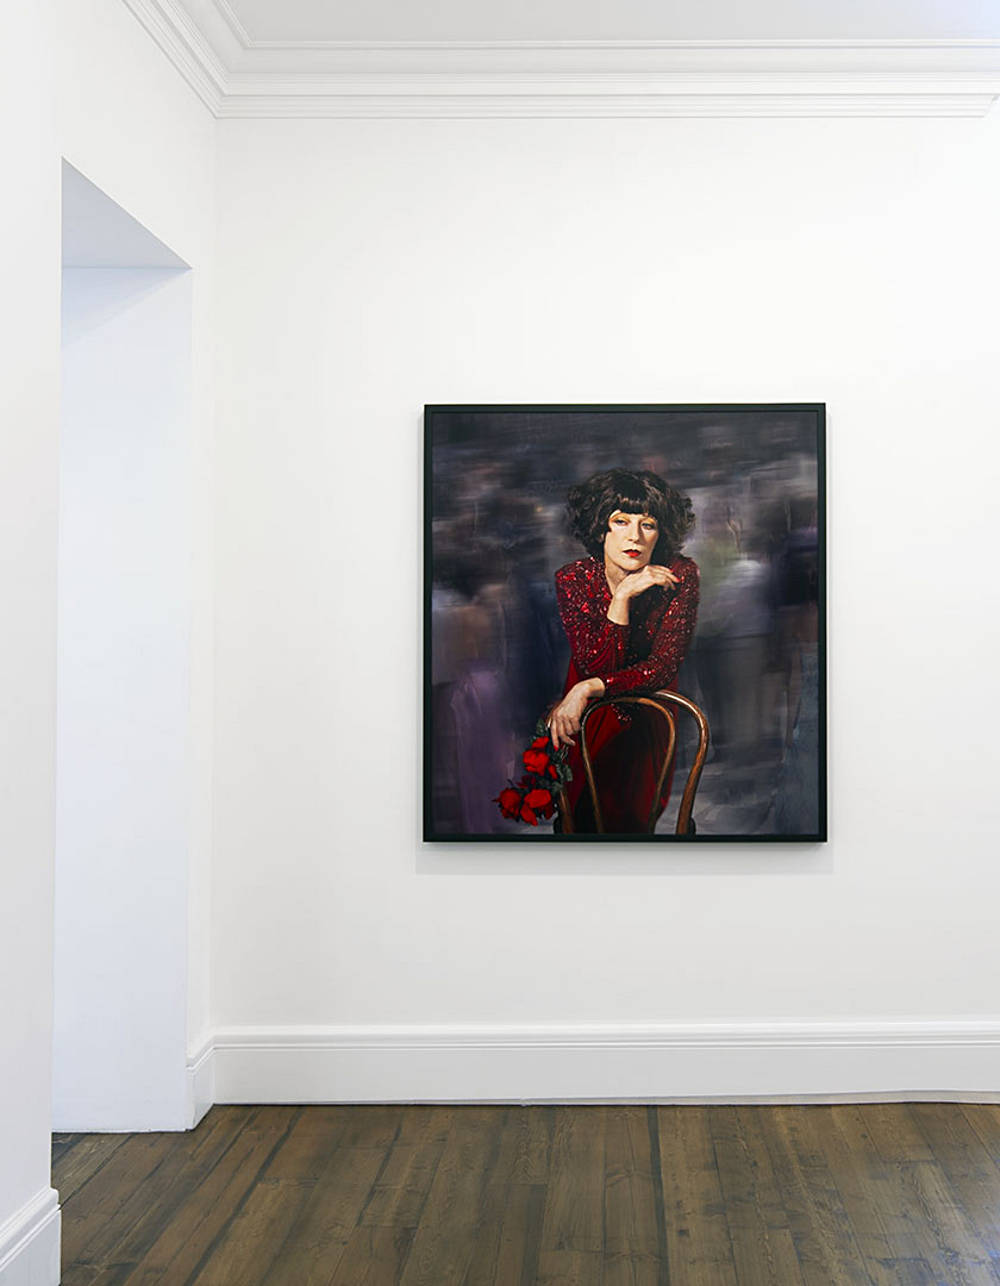 Spruth Magers London Cindy Sherman updated 3